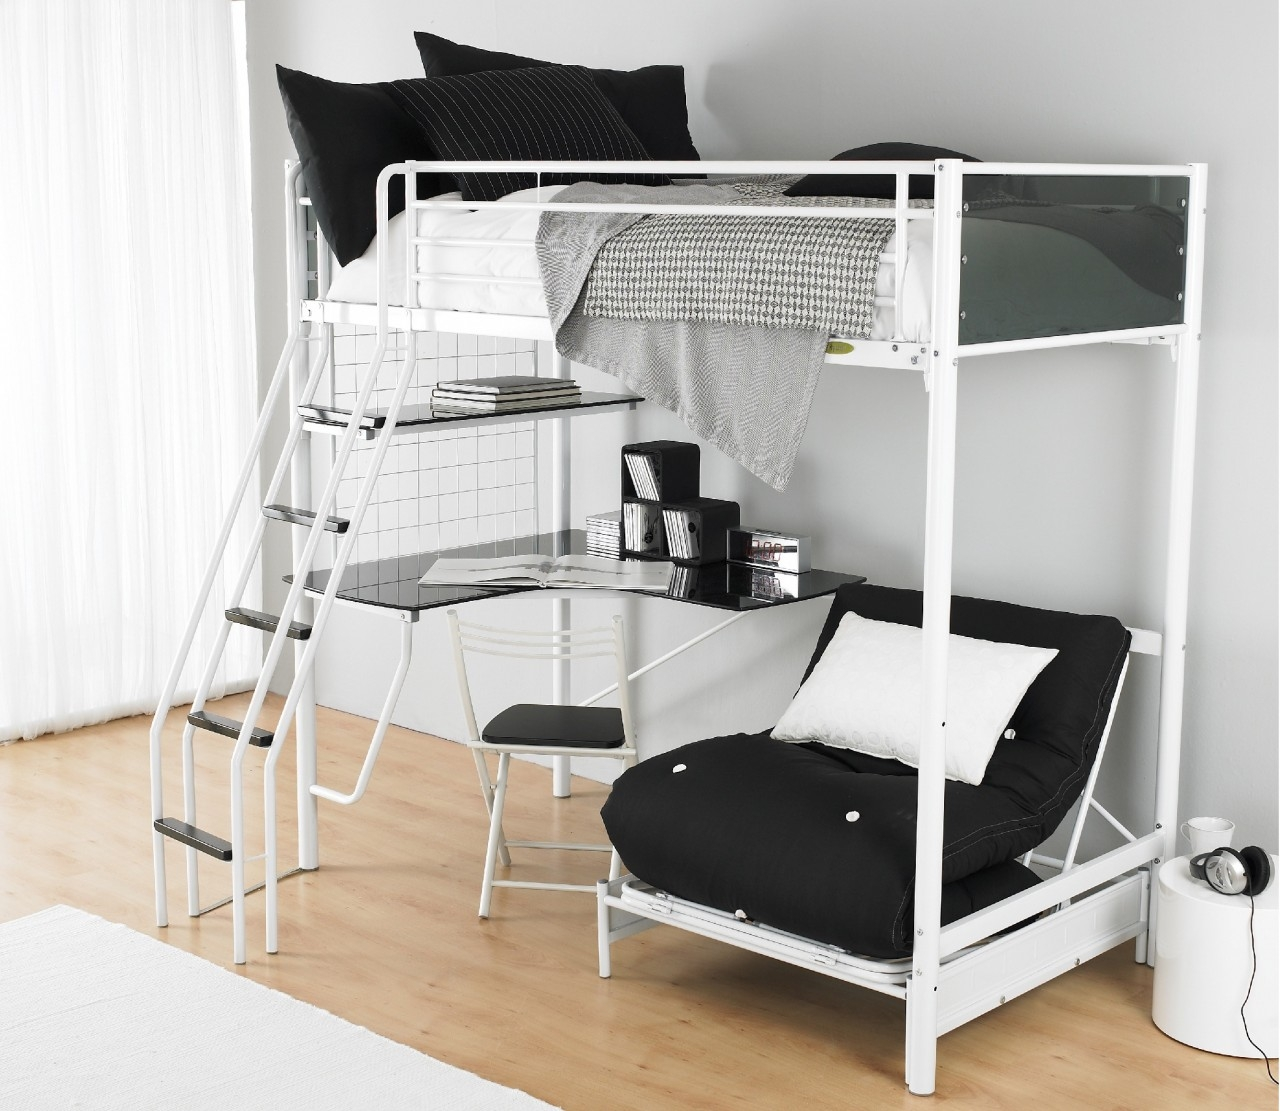 Ikea Bunk Bed With Study Table Cheaper Than Retail Price Buy Clothing Accessories And Lifestyle Products For Women Men